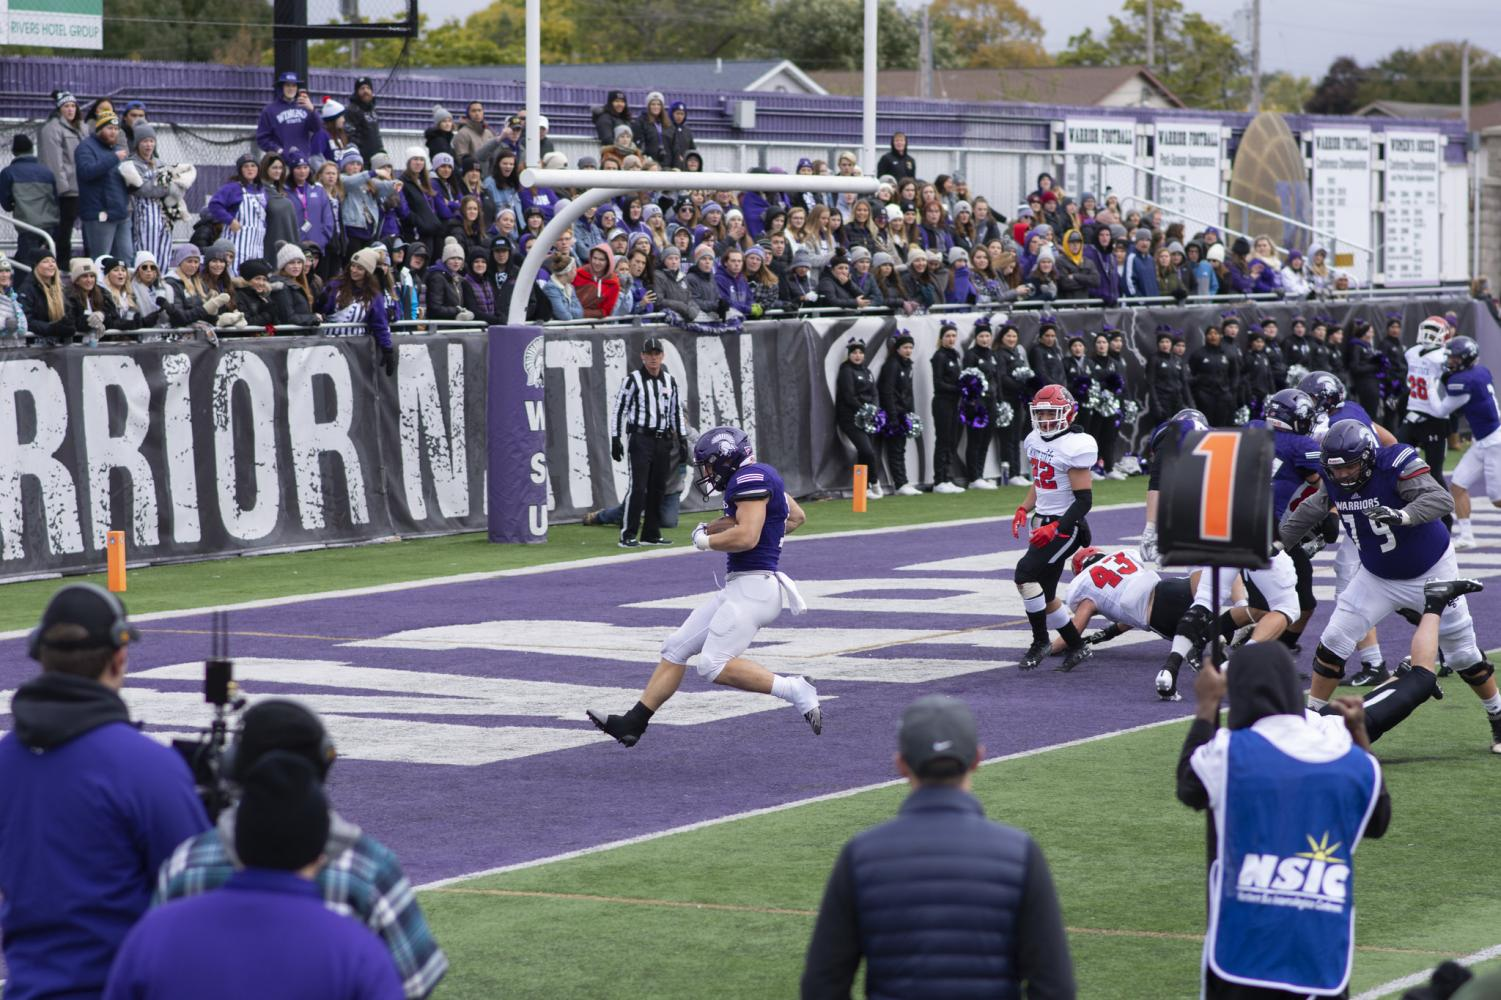 Landon Jacobson scores a touchdown in the second quarter with an unexpected one-yard run. The Warriors beat the Minot State Beavers 49-3 at the Altra Federal Credit Union Stadium on Sunday, Oct. 13.